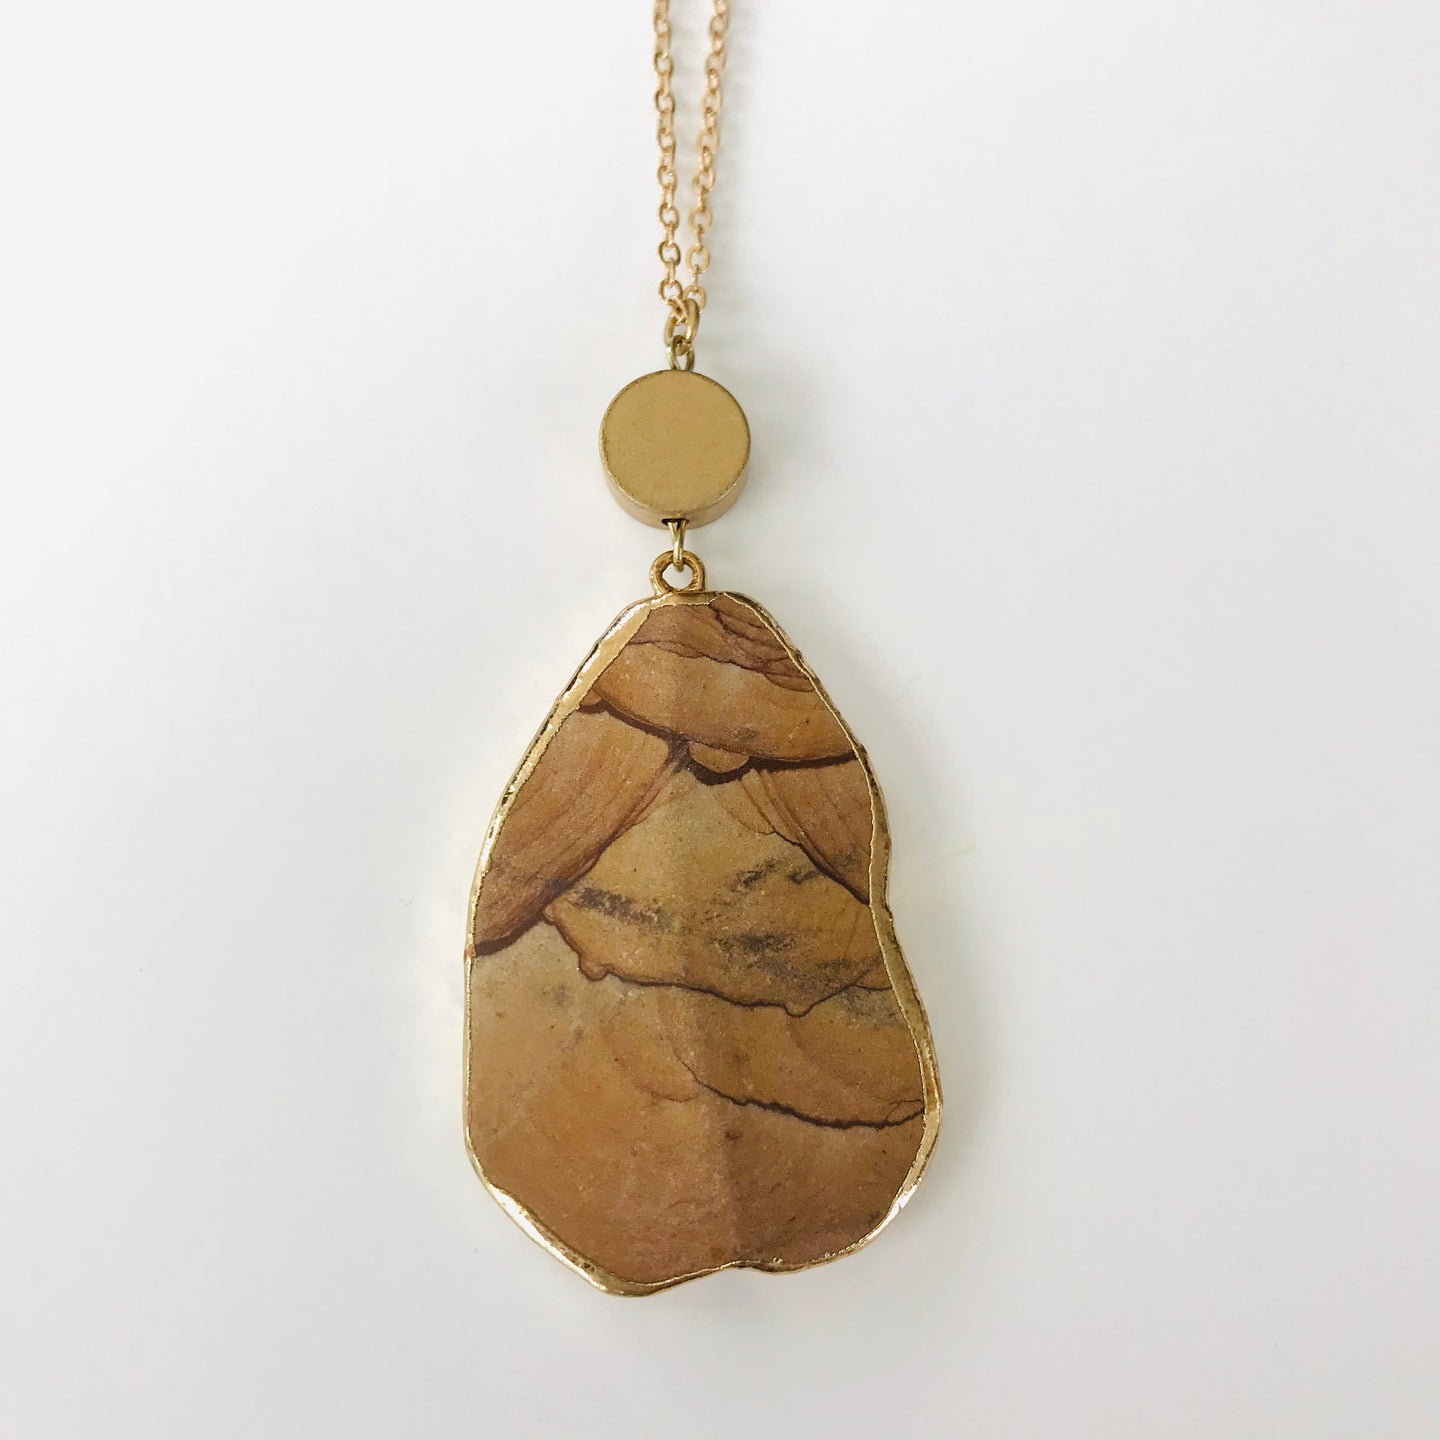 Wooden Pendent Necklace